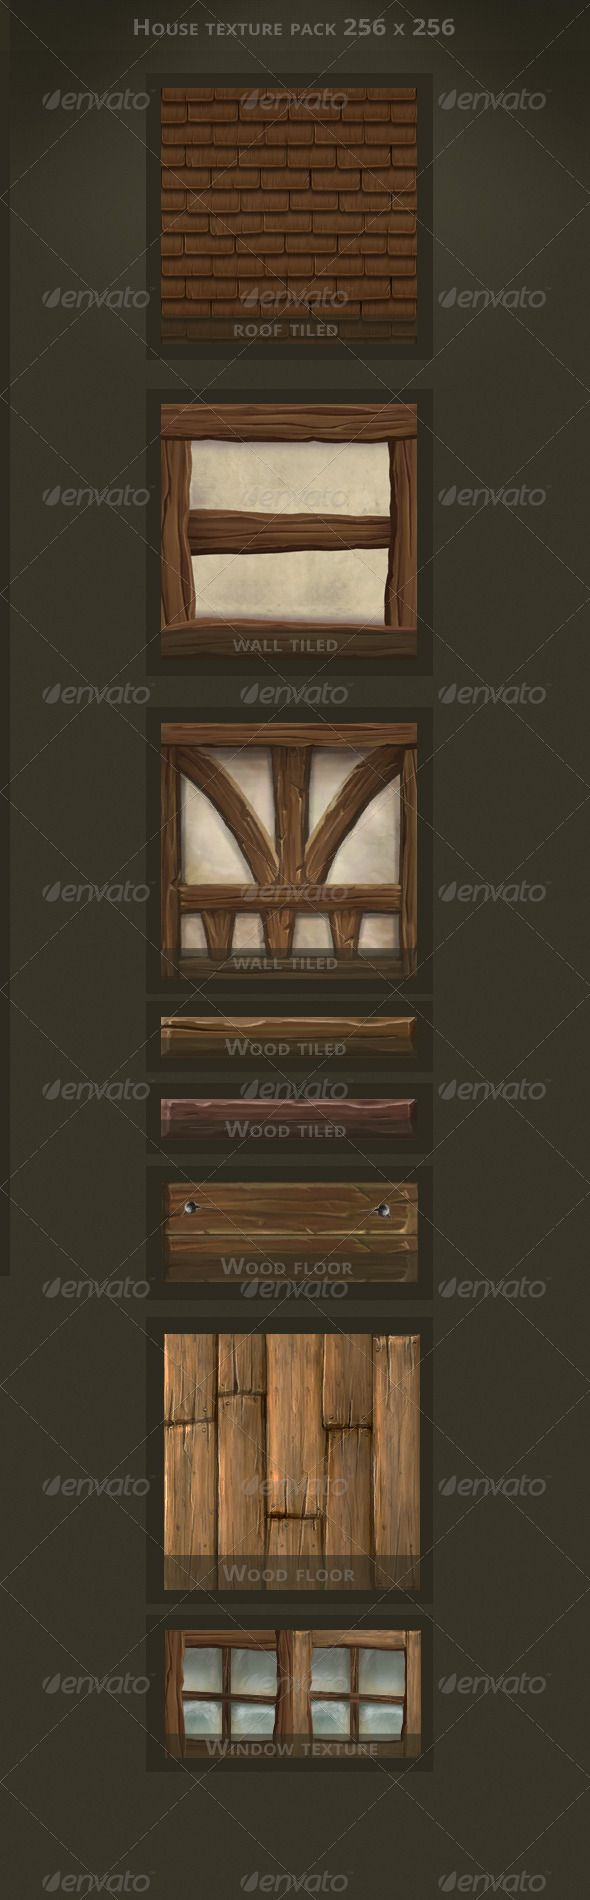 Hand Painted House Textures - 3DOcean Item for Sale